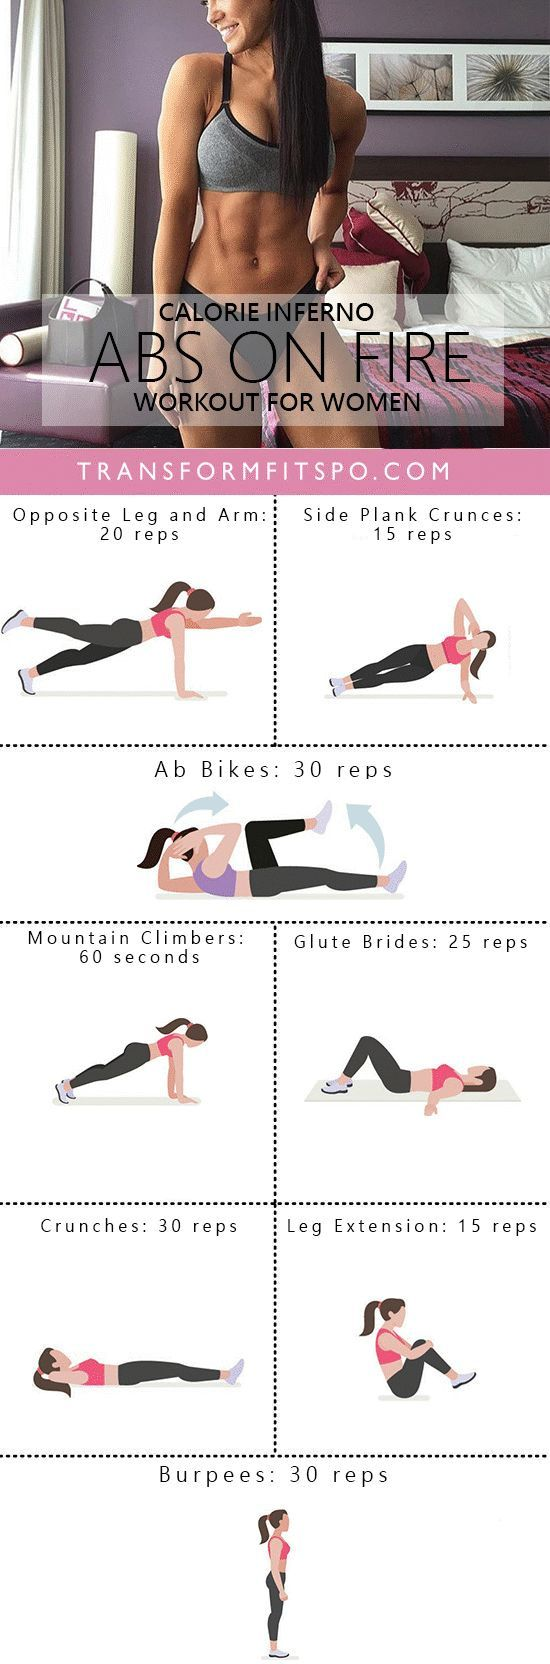 Repin and share if this workout melted your belly fat away! Read the post for the info!